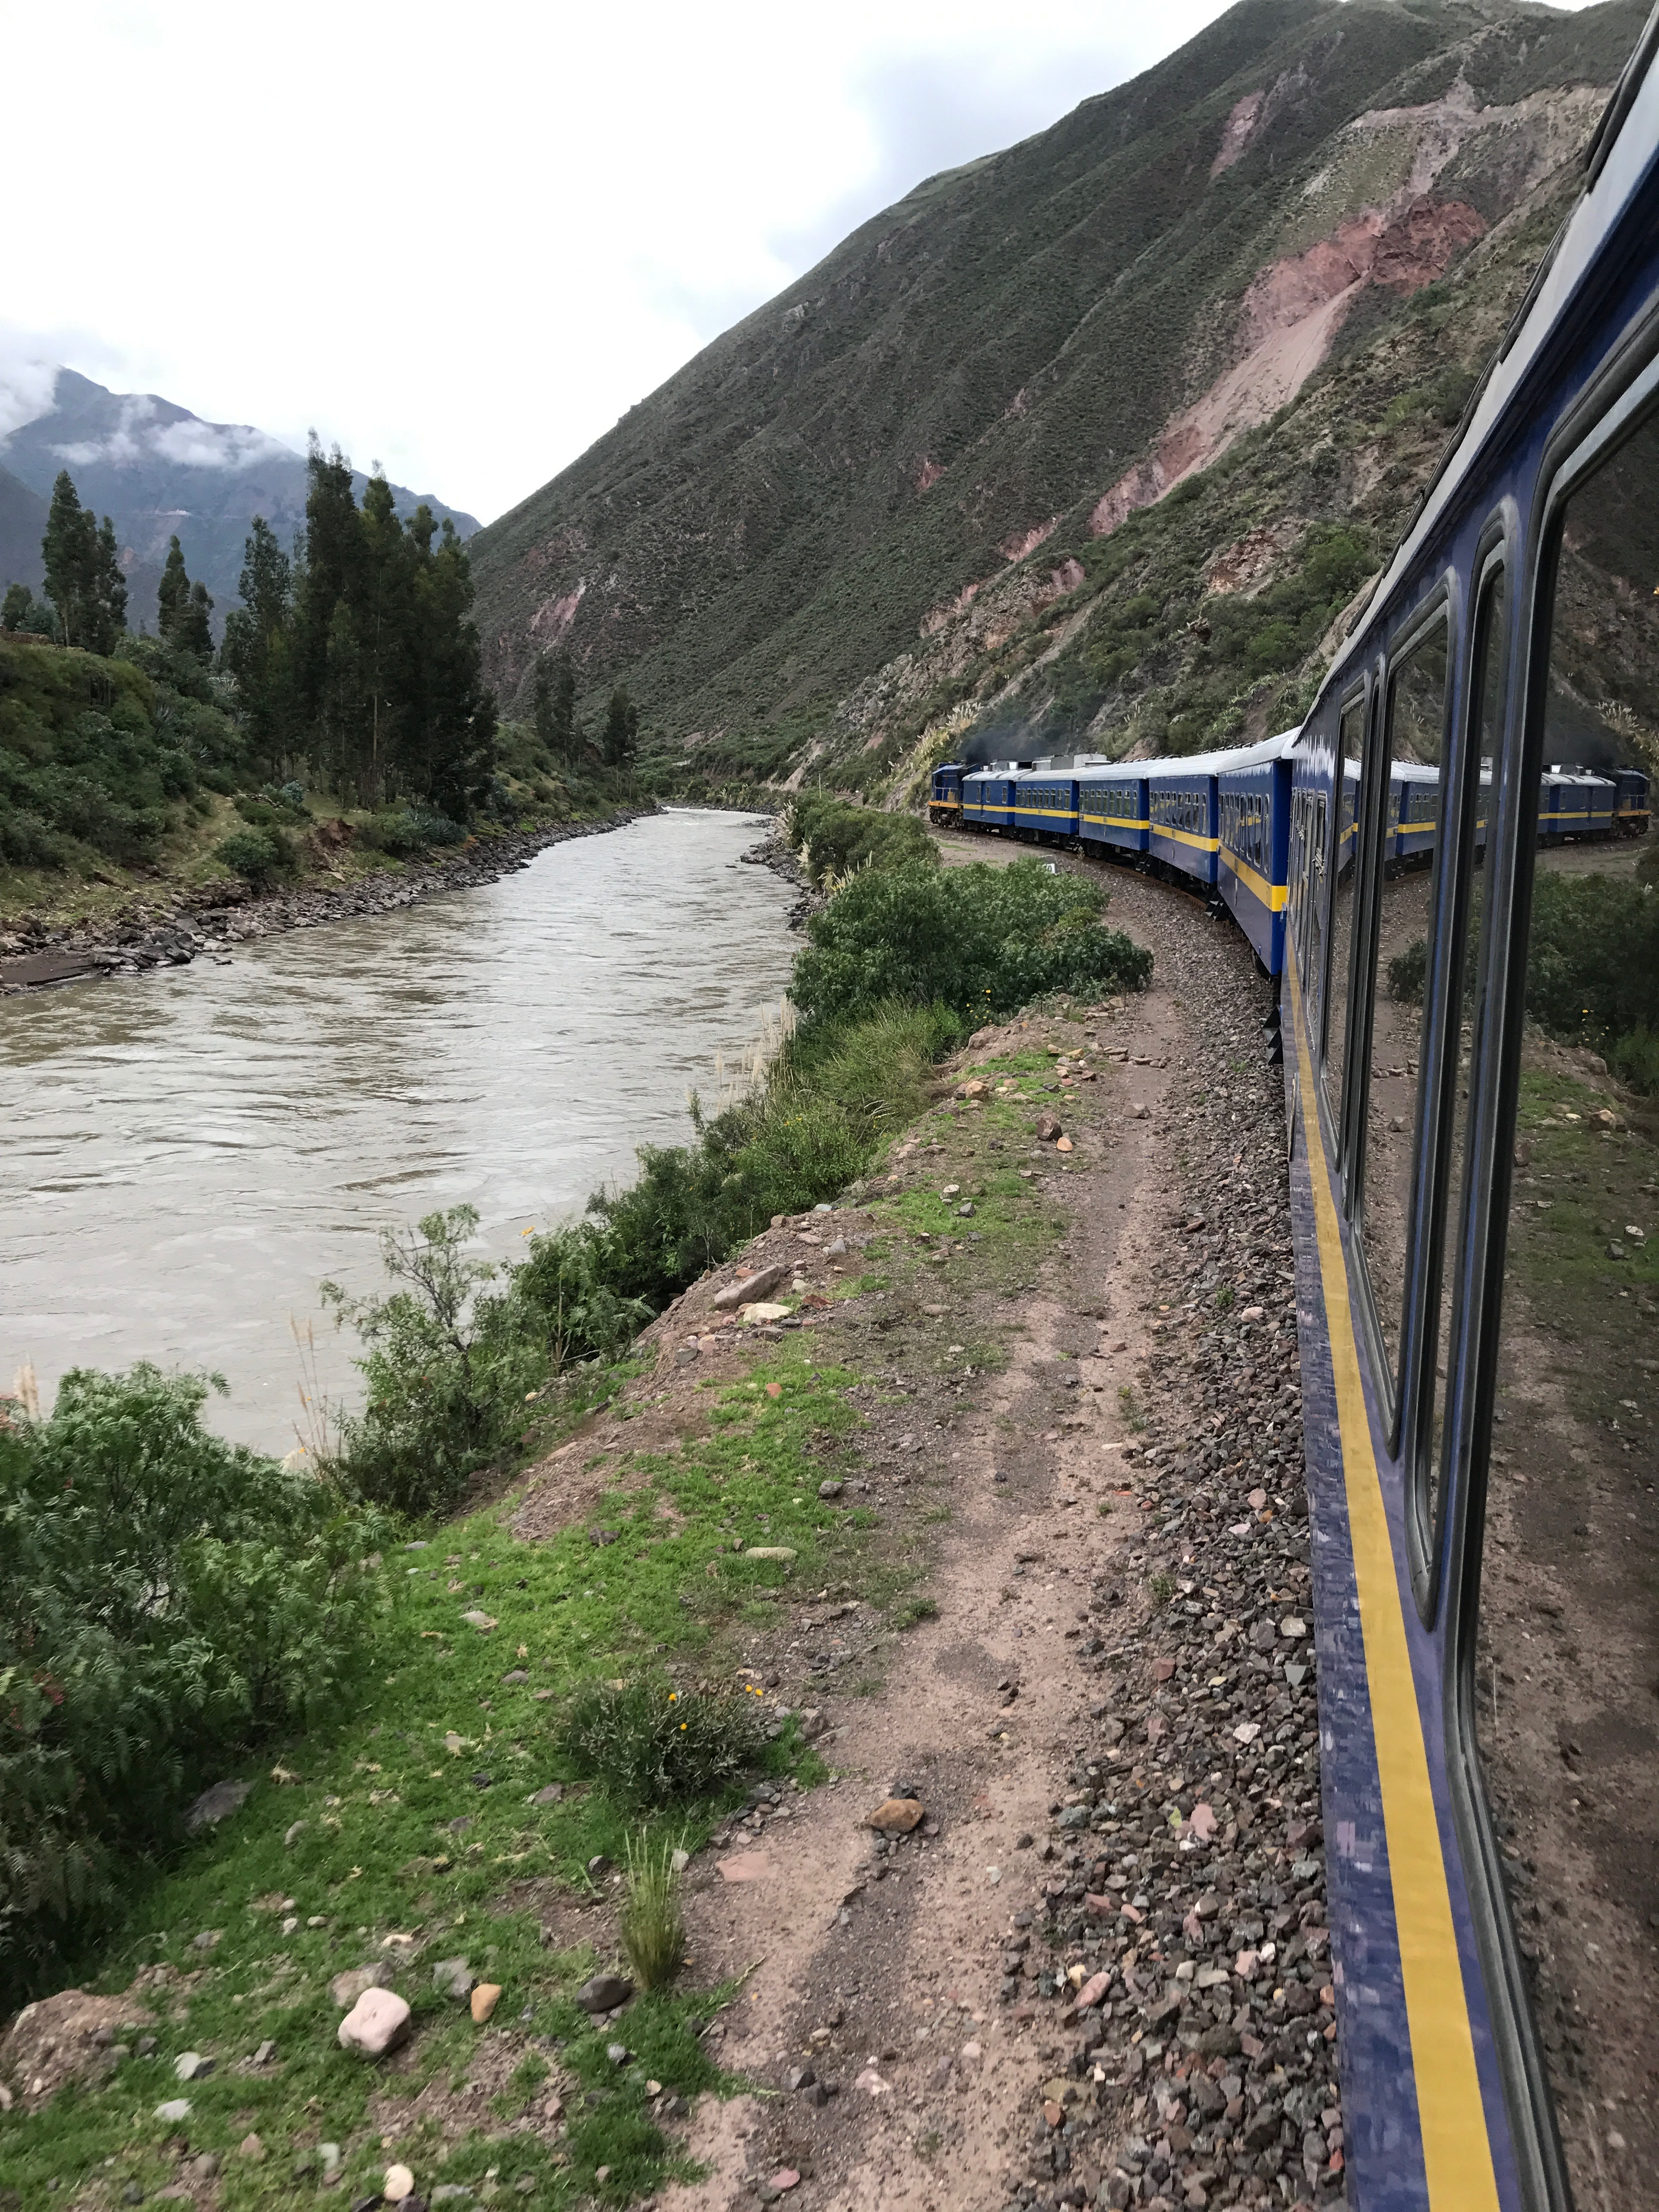 Andean Explorer train next to the Urubamba River